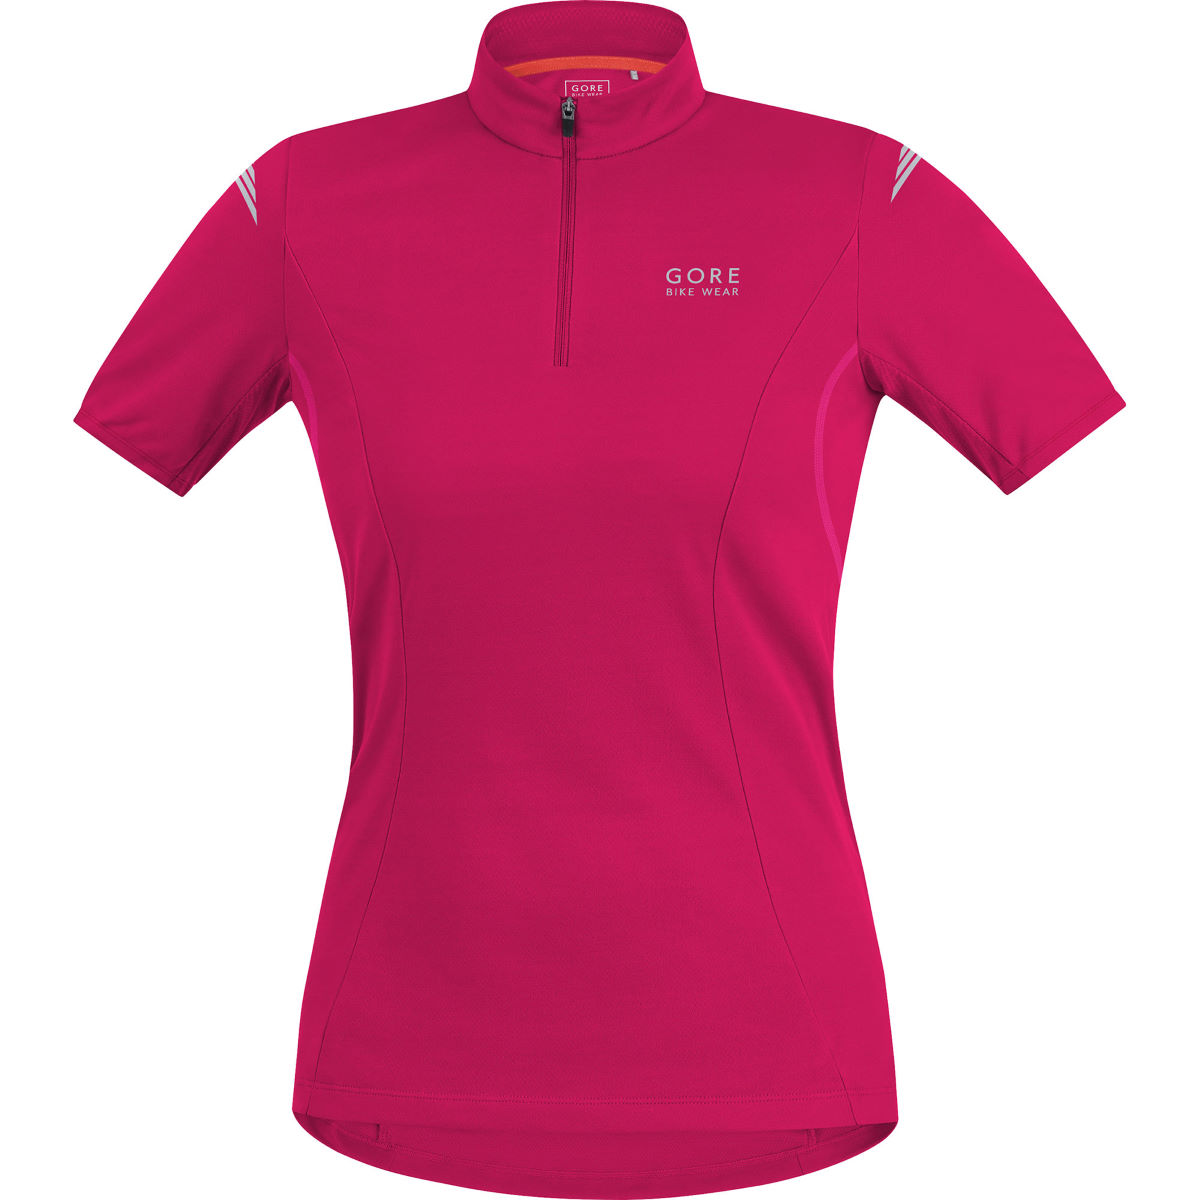 Maillot Femme Gore Bike Wear Element (manches courtes) - XS Rose